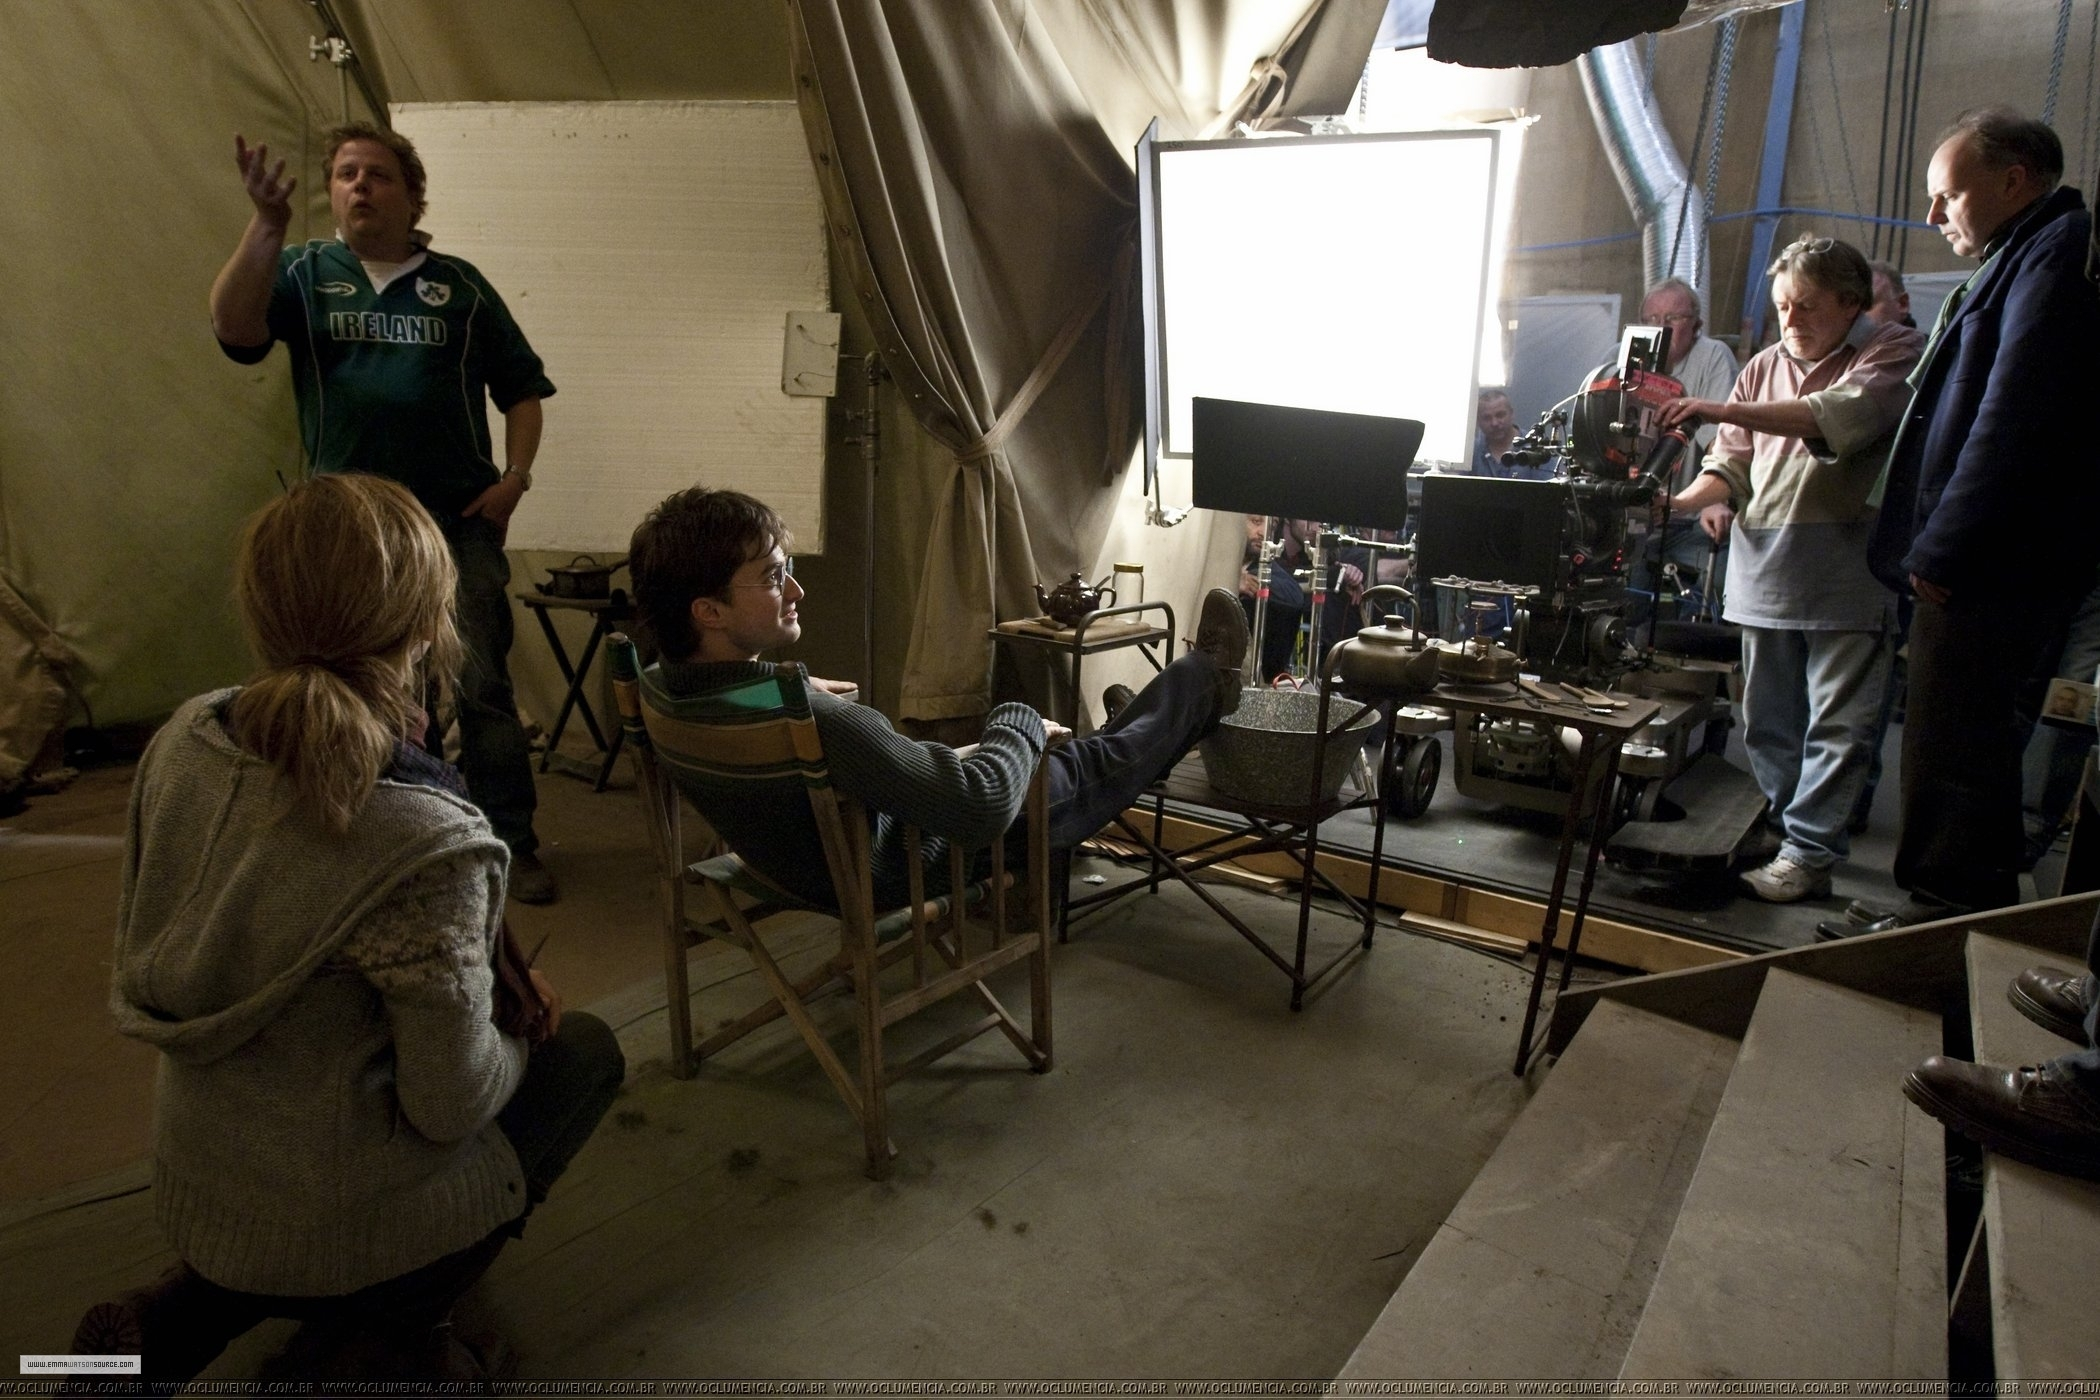 Harry Potter Wohnzimmer Behind The Scenes Hq Harry Potter Foto 16961208 Fanpop